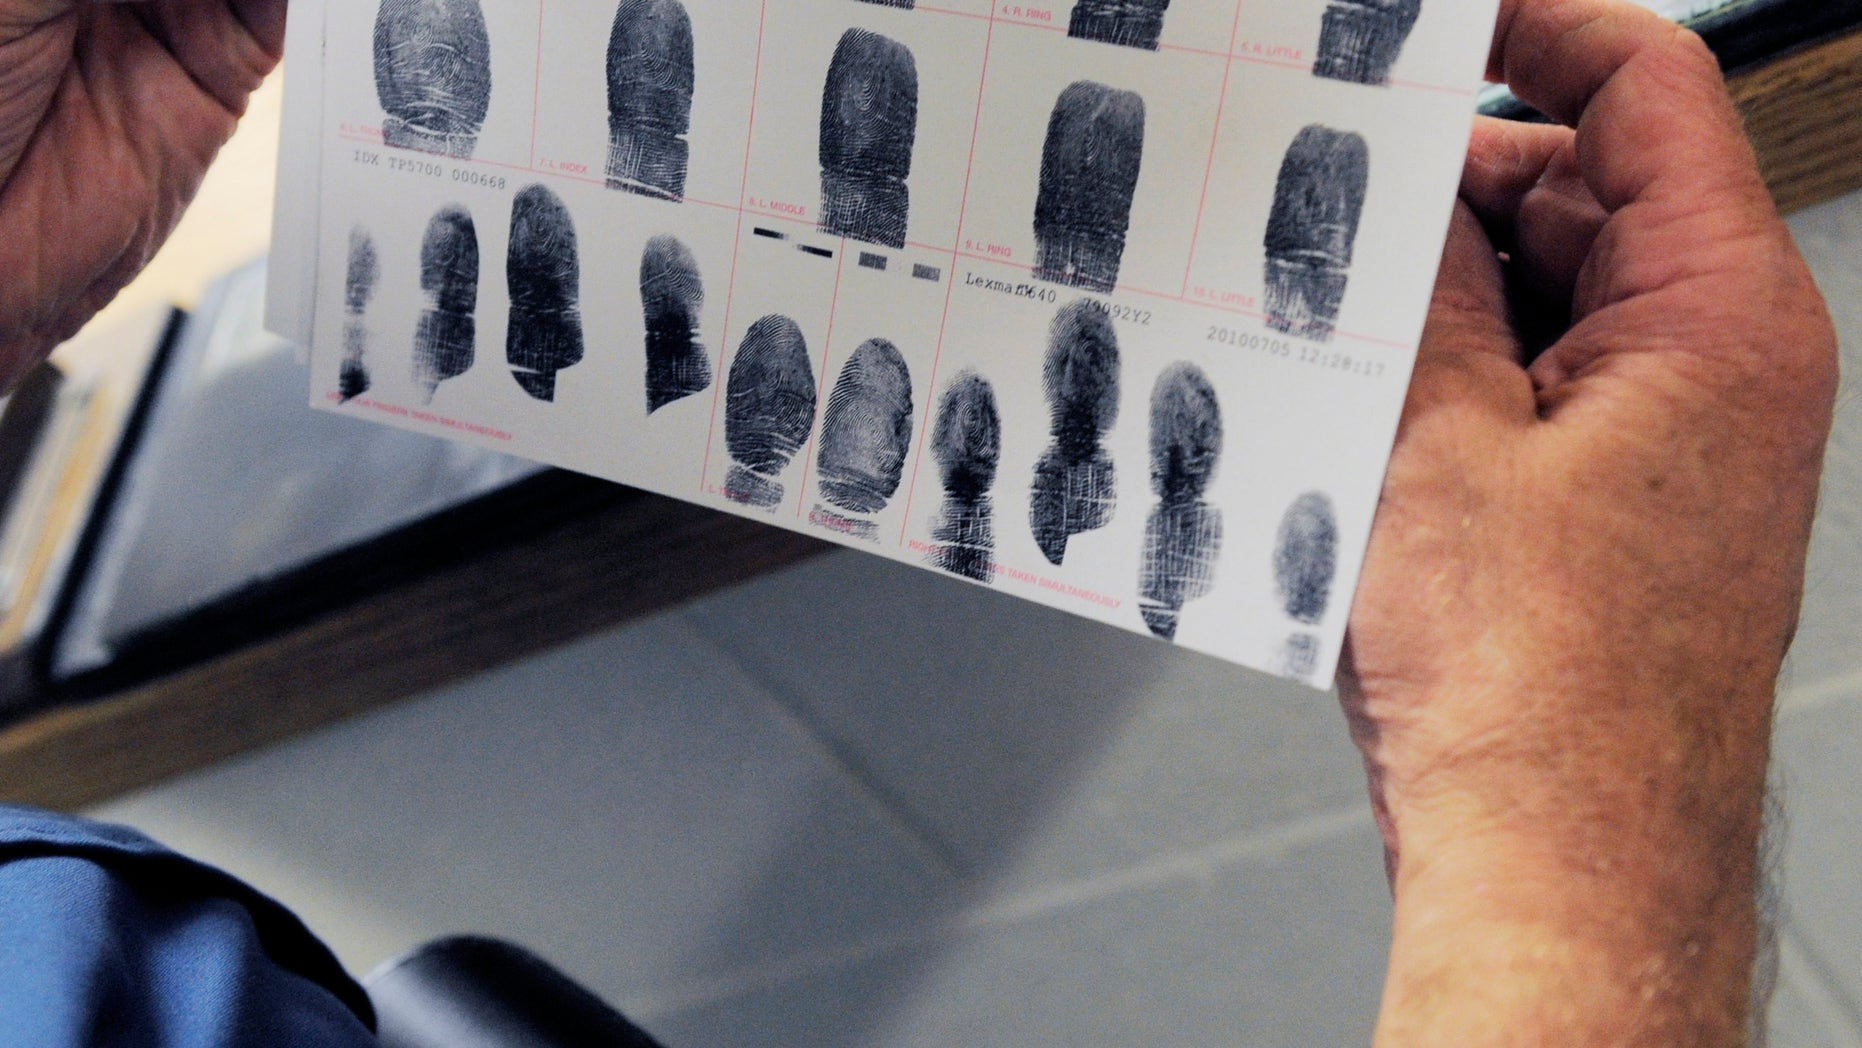 In this July 26, 2010 photo,Senior Deputy Jerry Anttila looks at a set of fingerprints for an unidentified suspect during the booking process at the Arapahoe County Justice Center in Centennial, Colo. (AP)